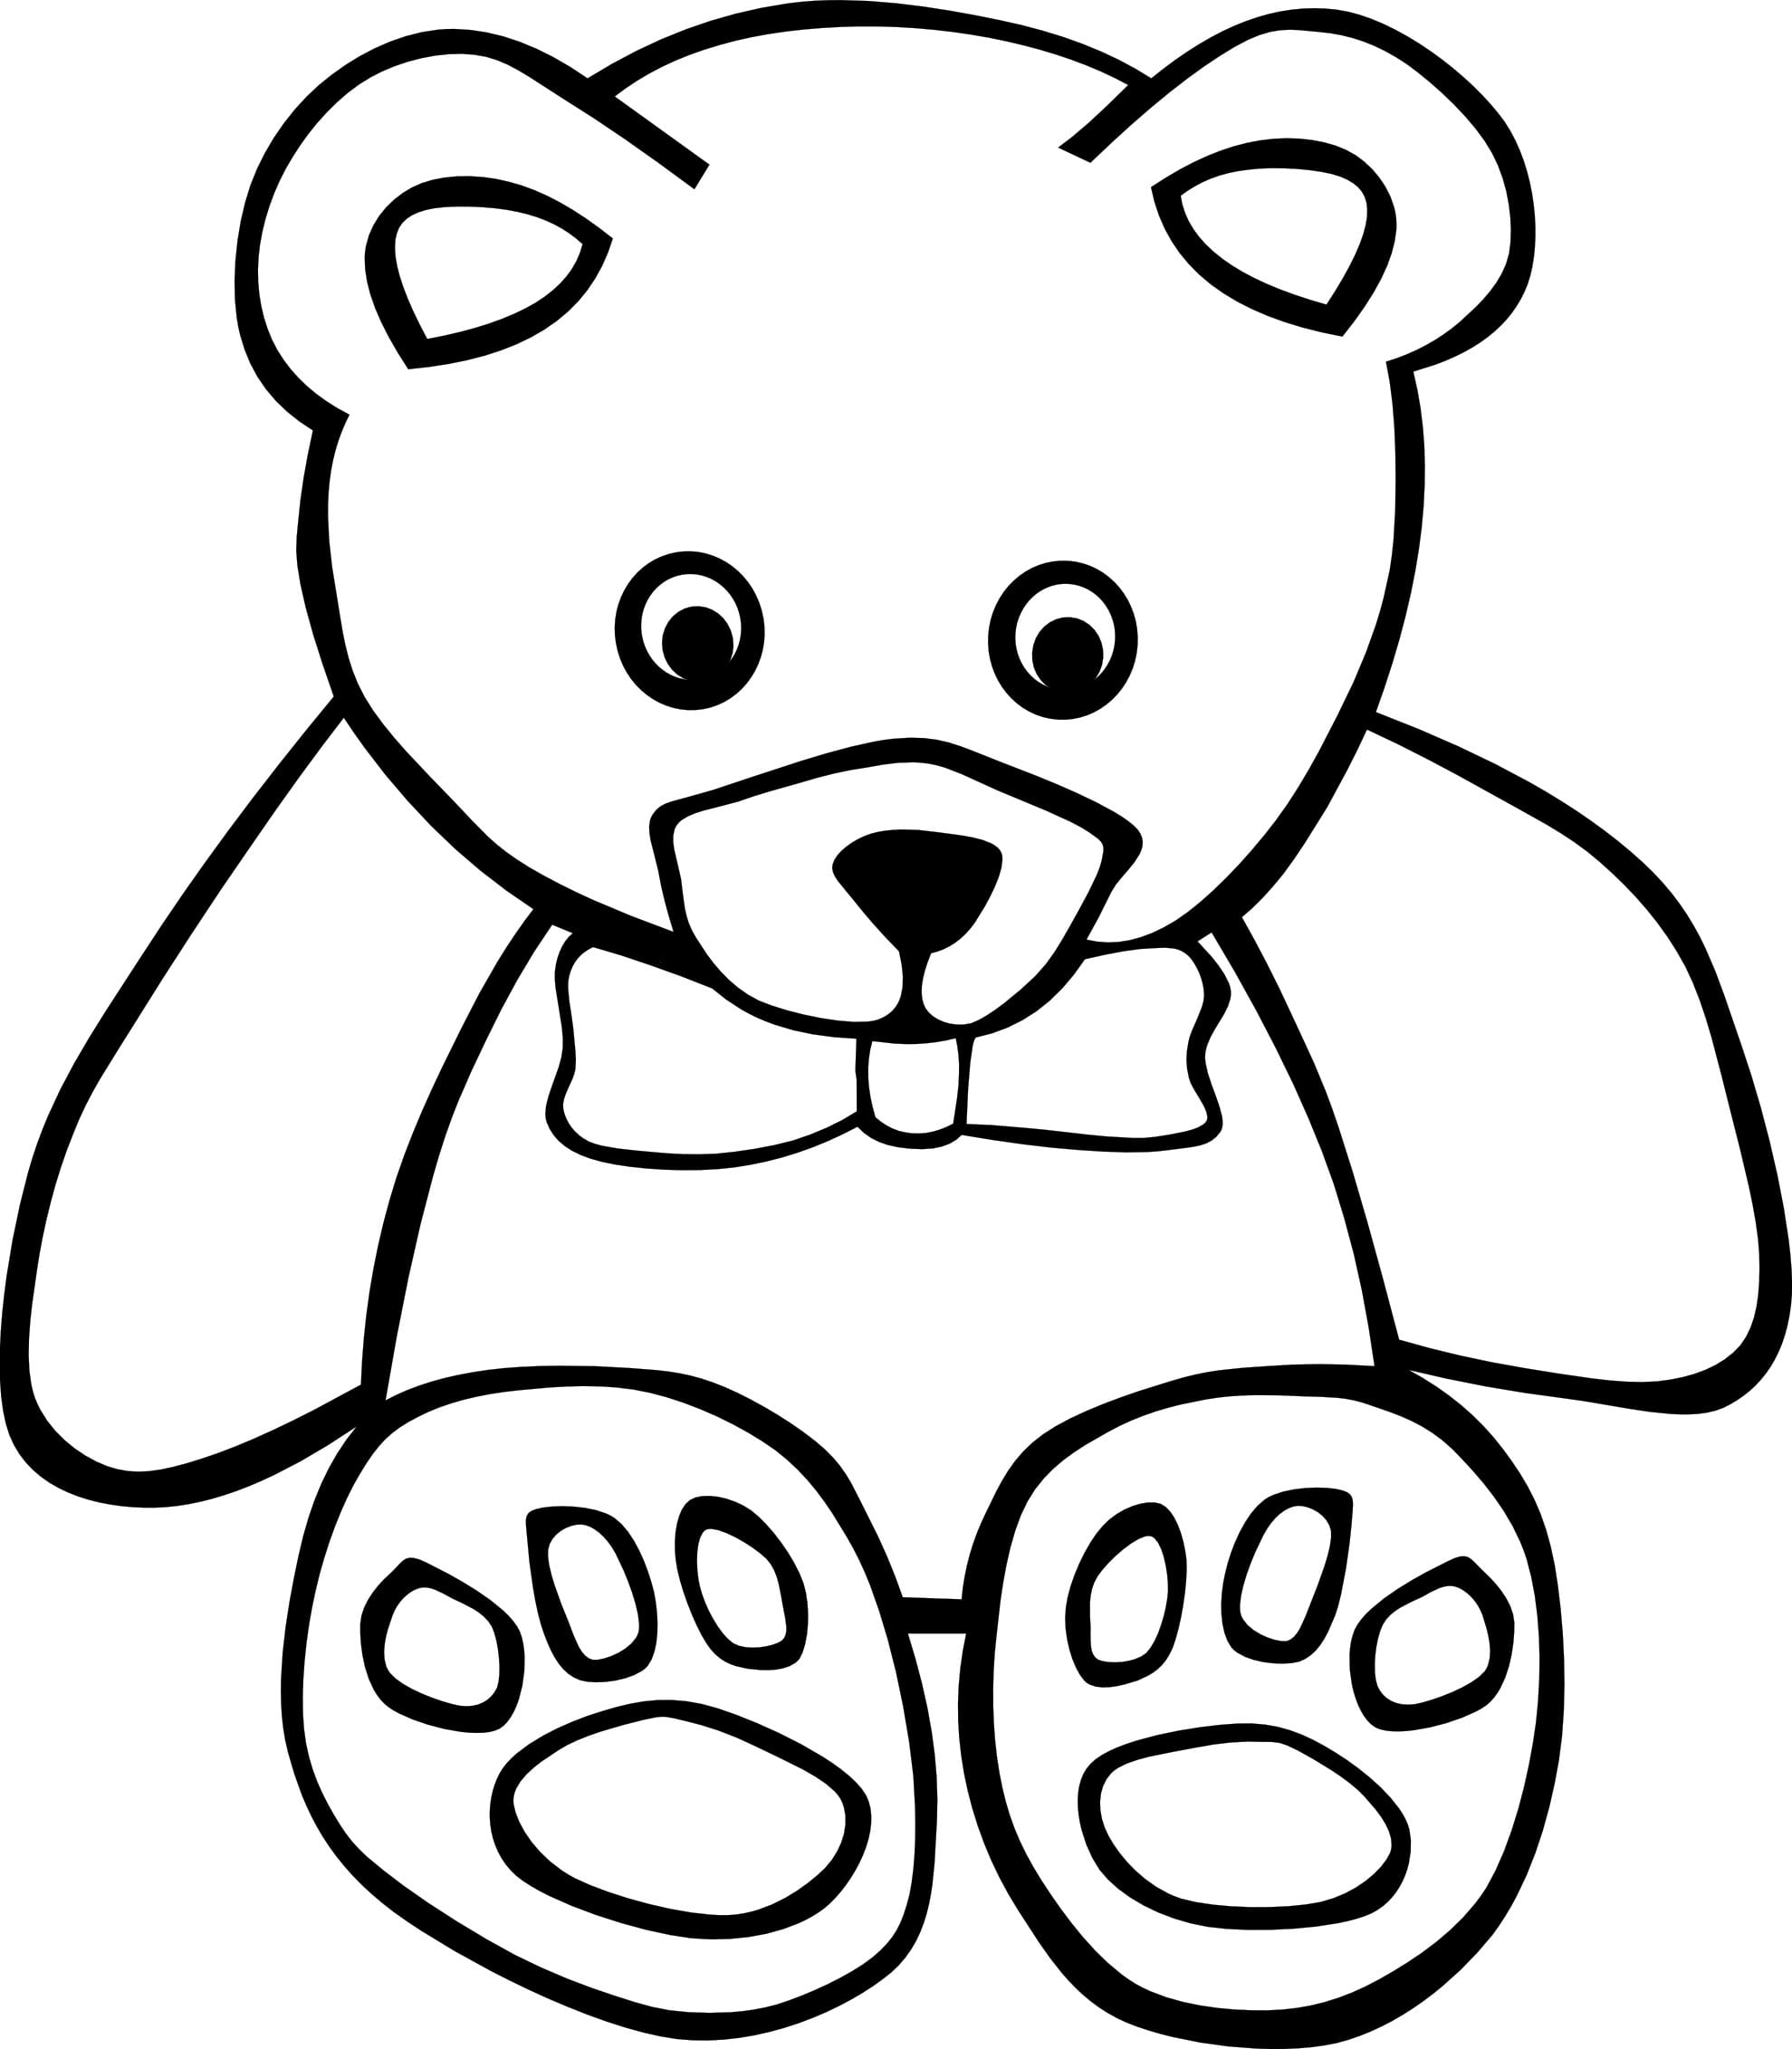 Alluring Free Printable Teddy Bear Coloring Pages Colouring In